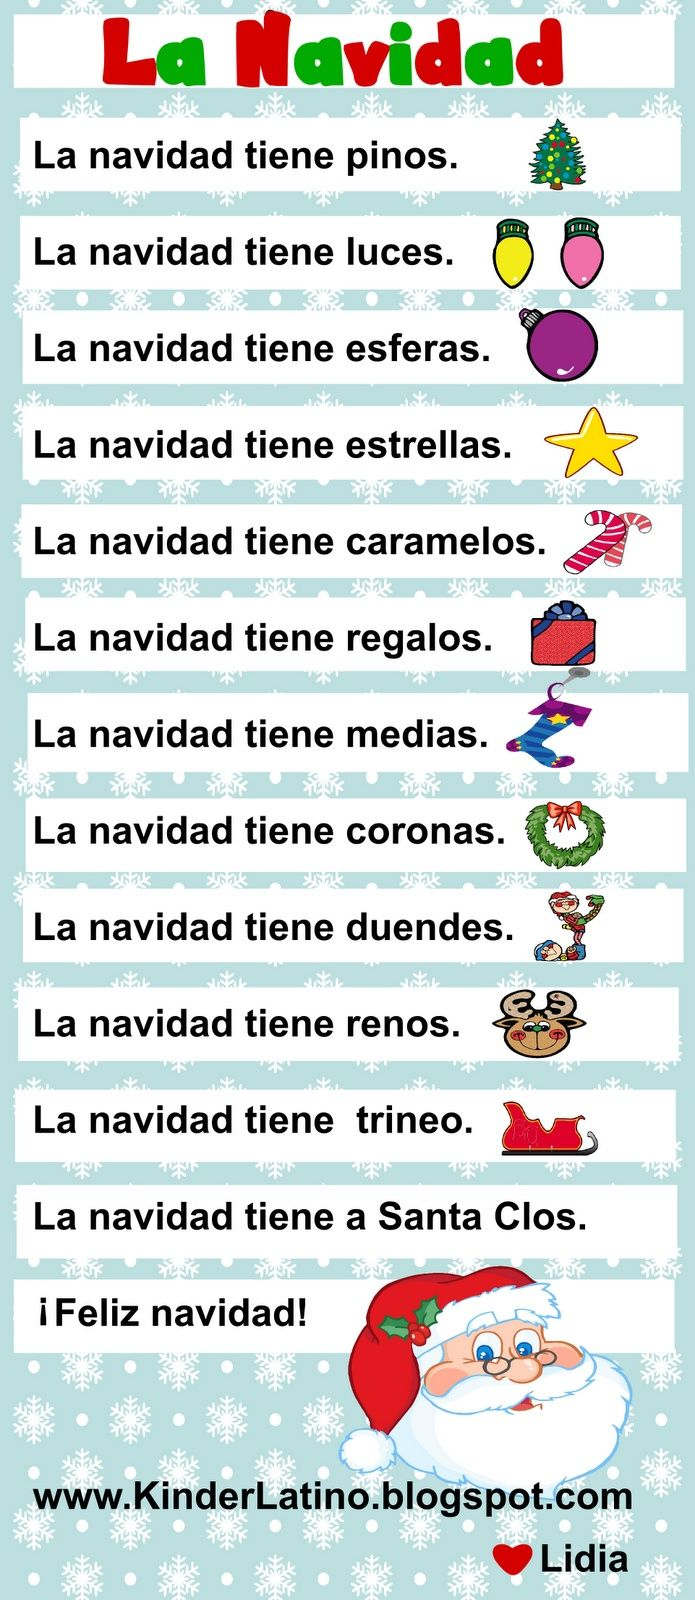 La Navidad tiene... Pinned on behalf of Pink Pad, the women's health mobile app with the built-in community